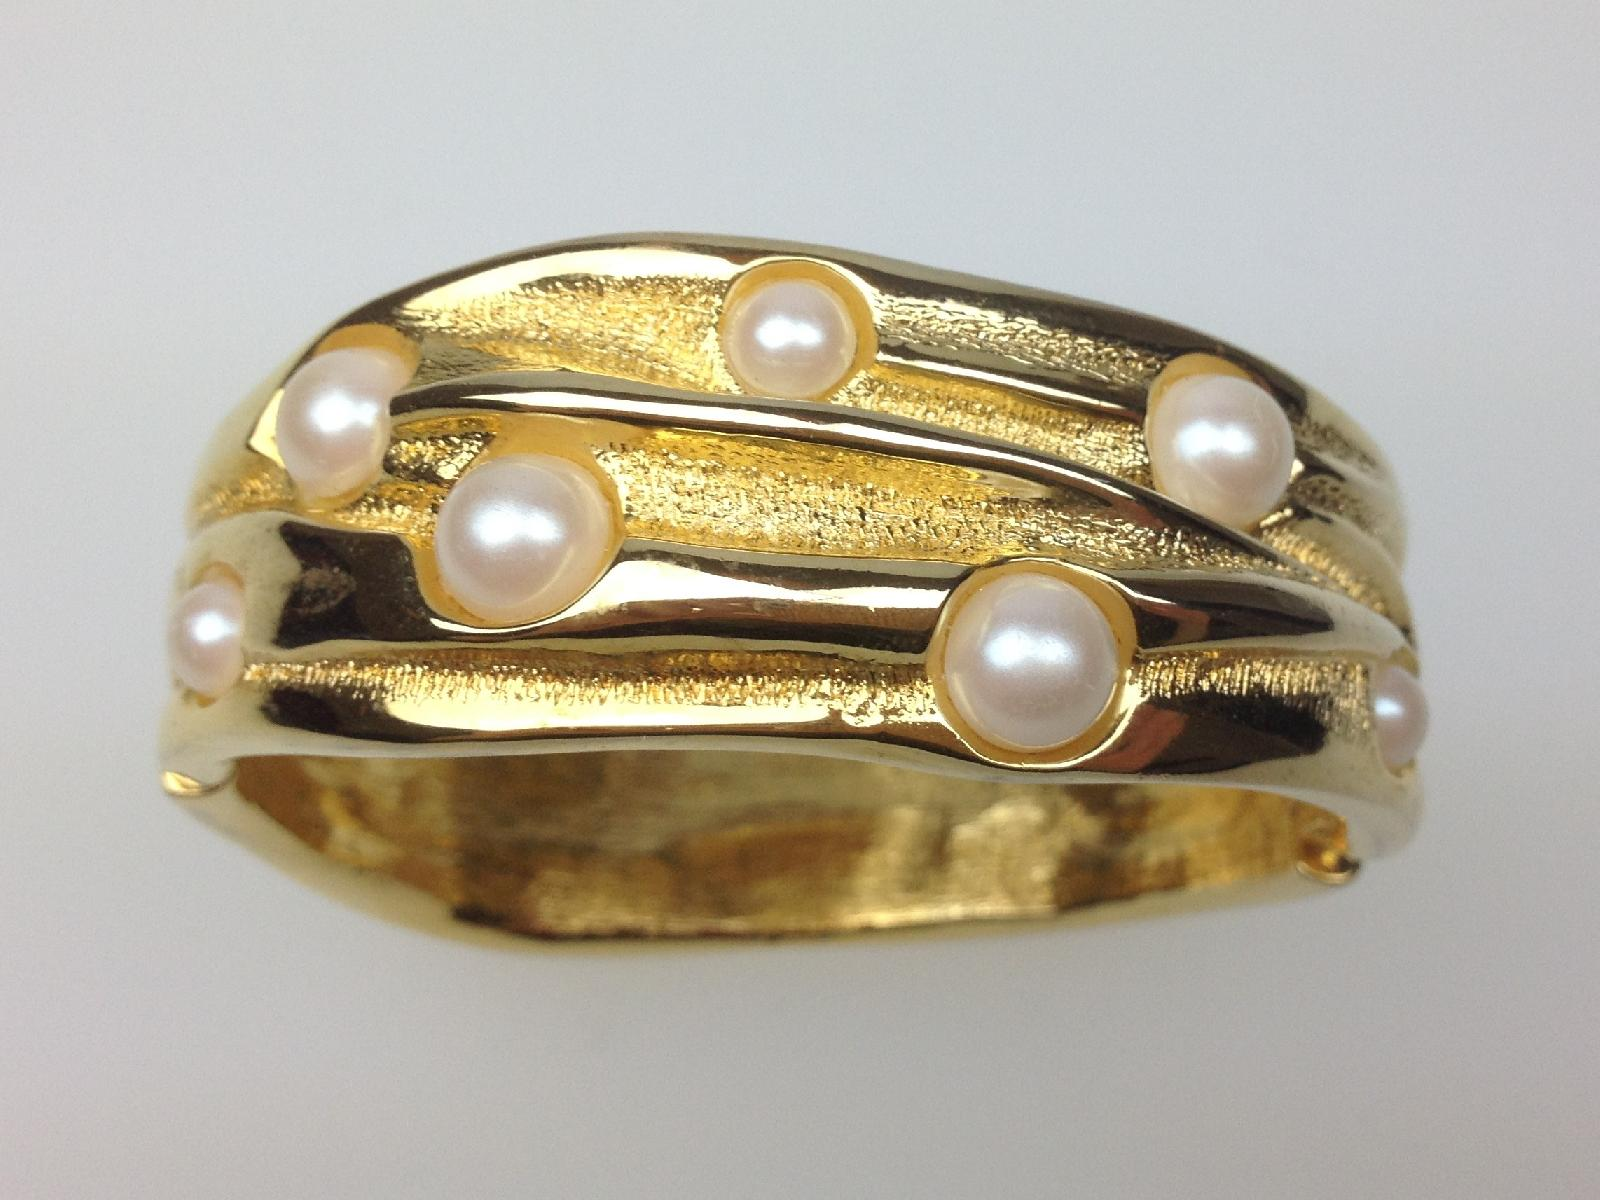 Vintage 80s Wide Goldtone Glass Faux Pearl Clamper Cuff Hinged Bracelet